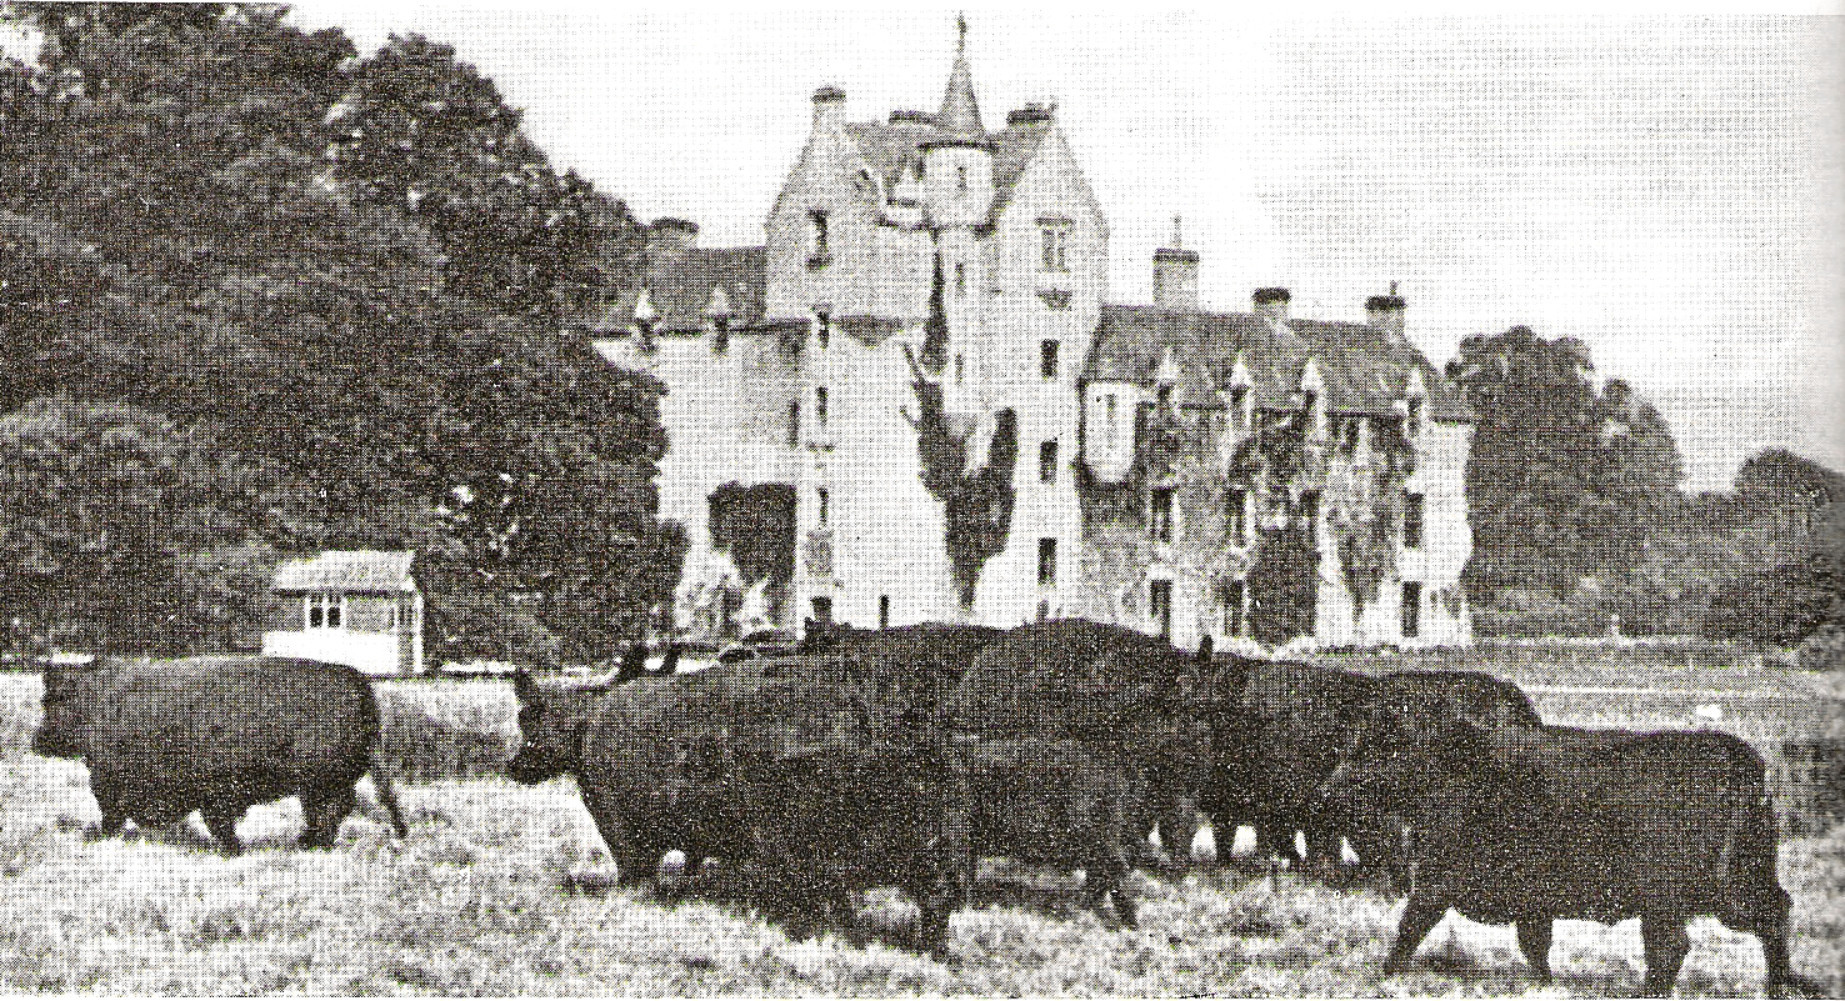 An old picture of Aberdeen-Angus cattle in front of Ballindalloch Castle.